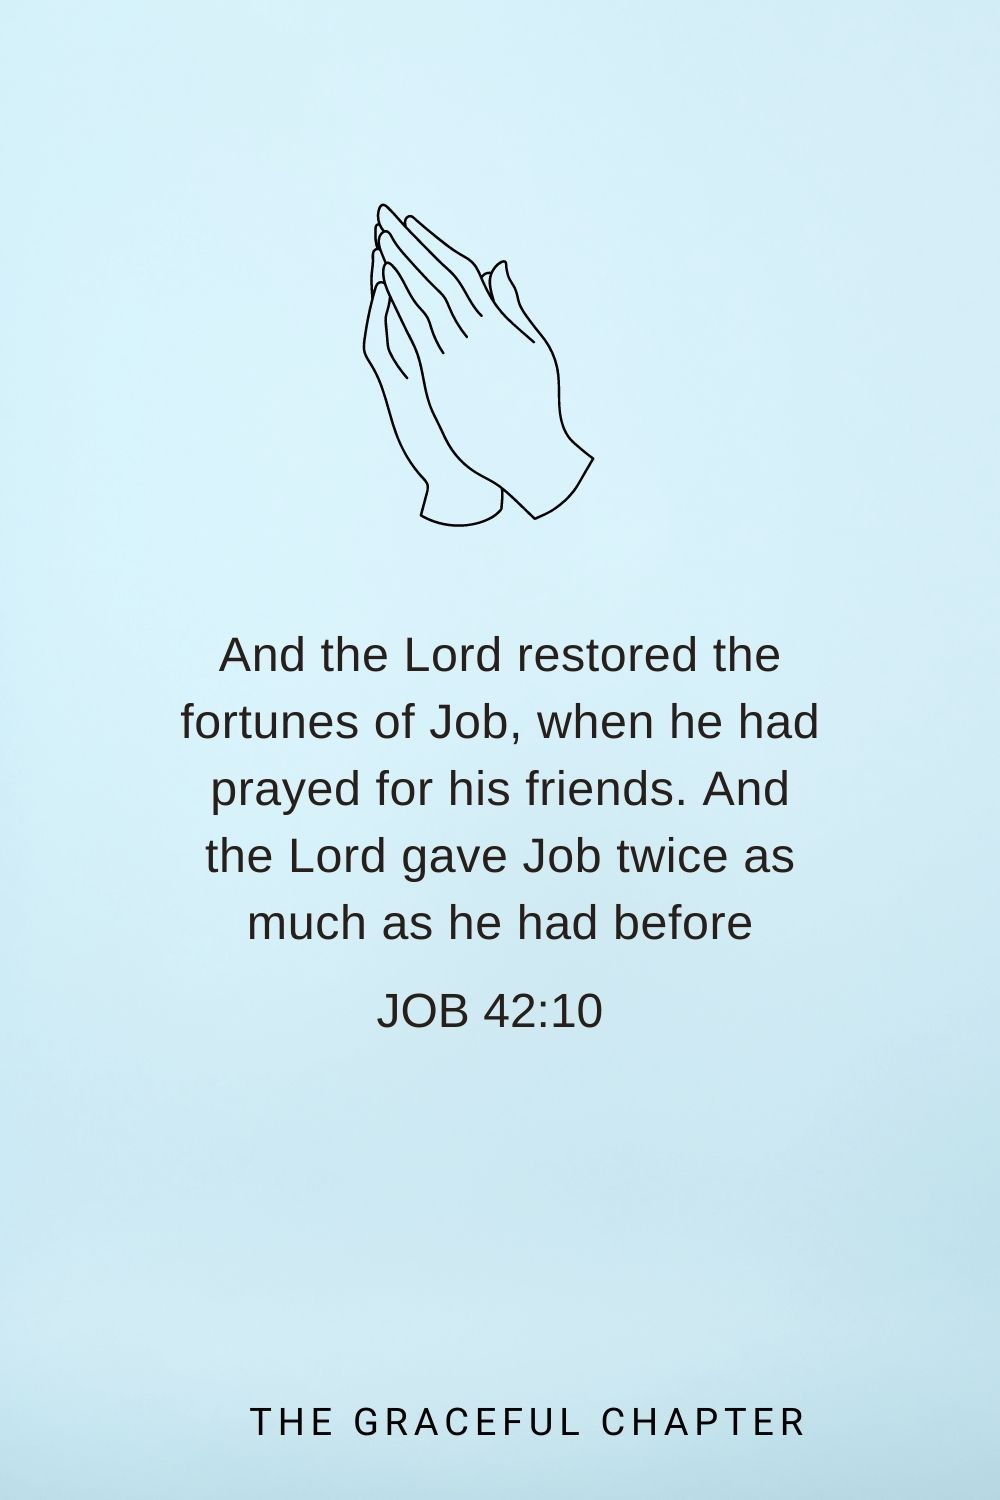 And the Lord restored the fortunes of Job, when he had prayed for his friends. And the Lord gave Job twice as much as he had before Job 42:10